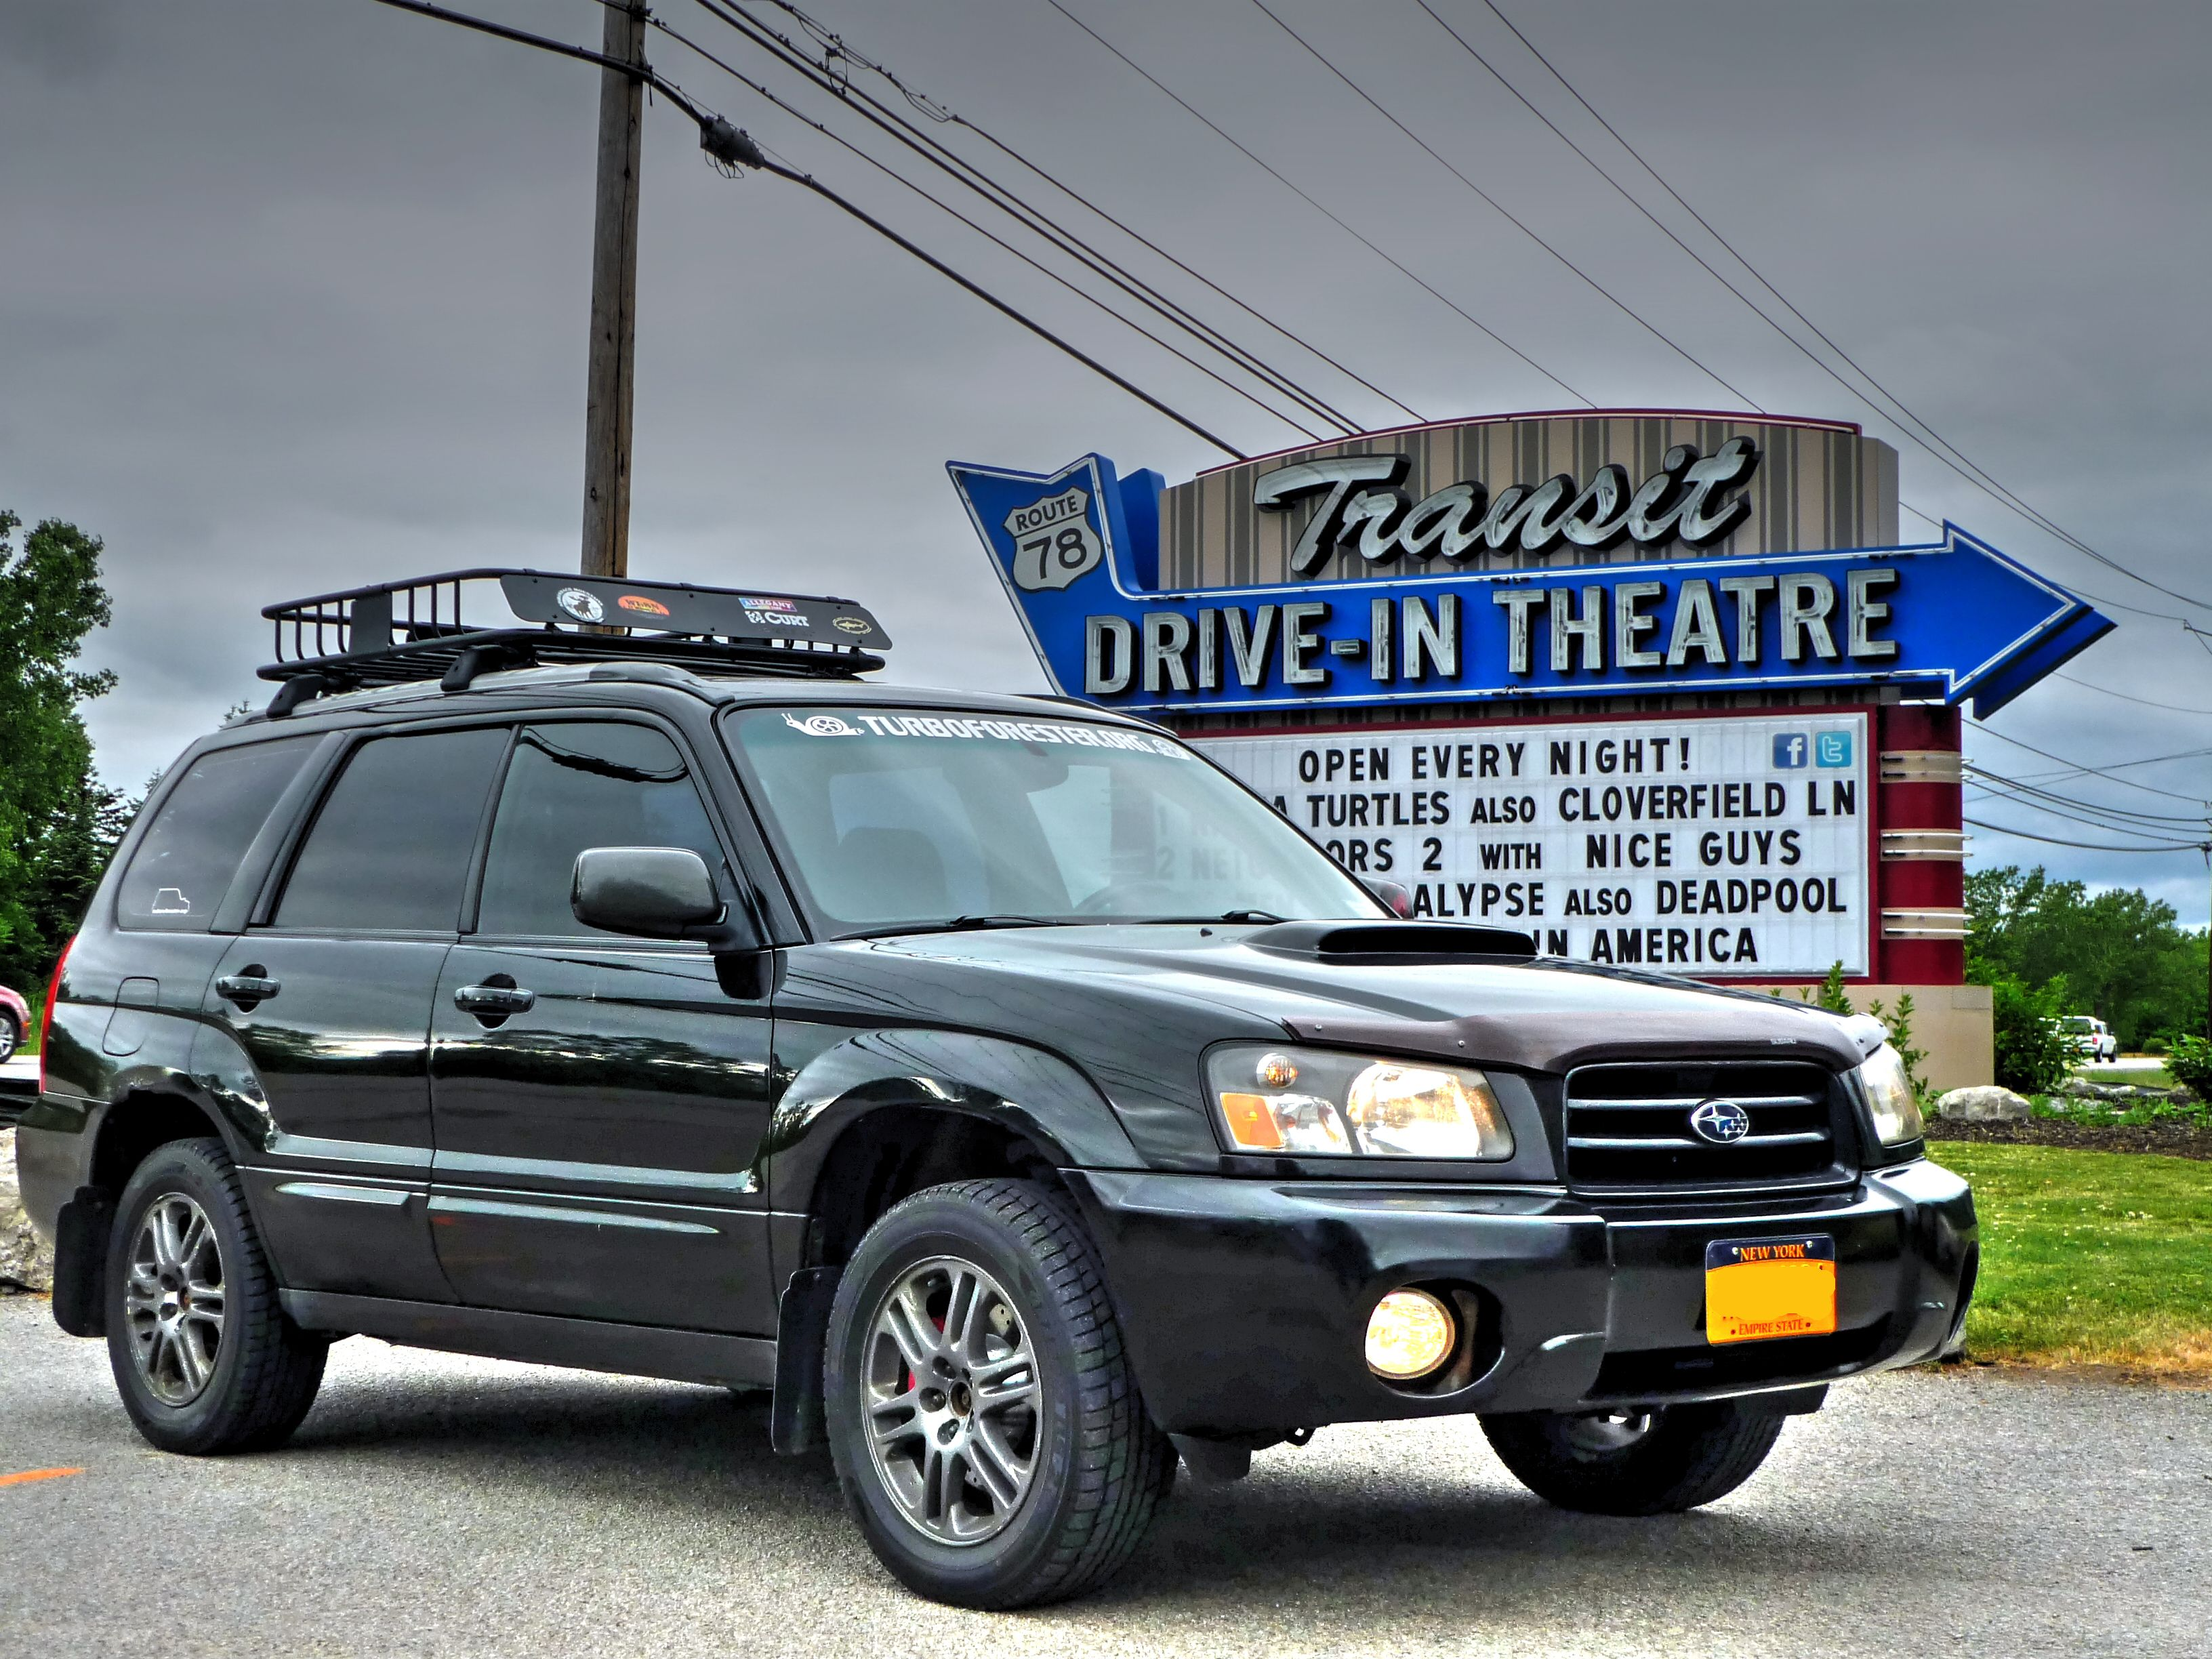 2004 Subaru Forester Fxt At A Drive In Www Turboforester Org And Www Snailmafia Com Turboforester